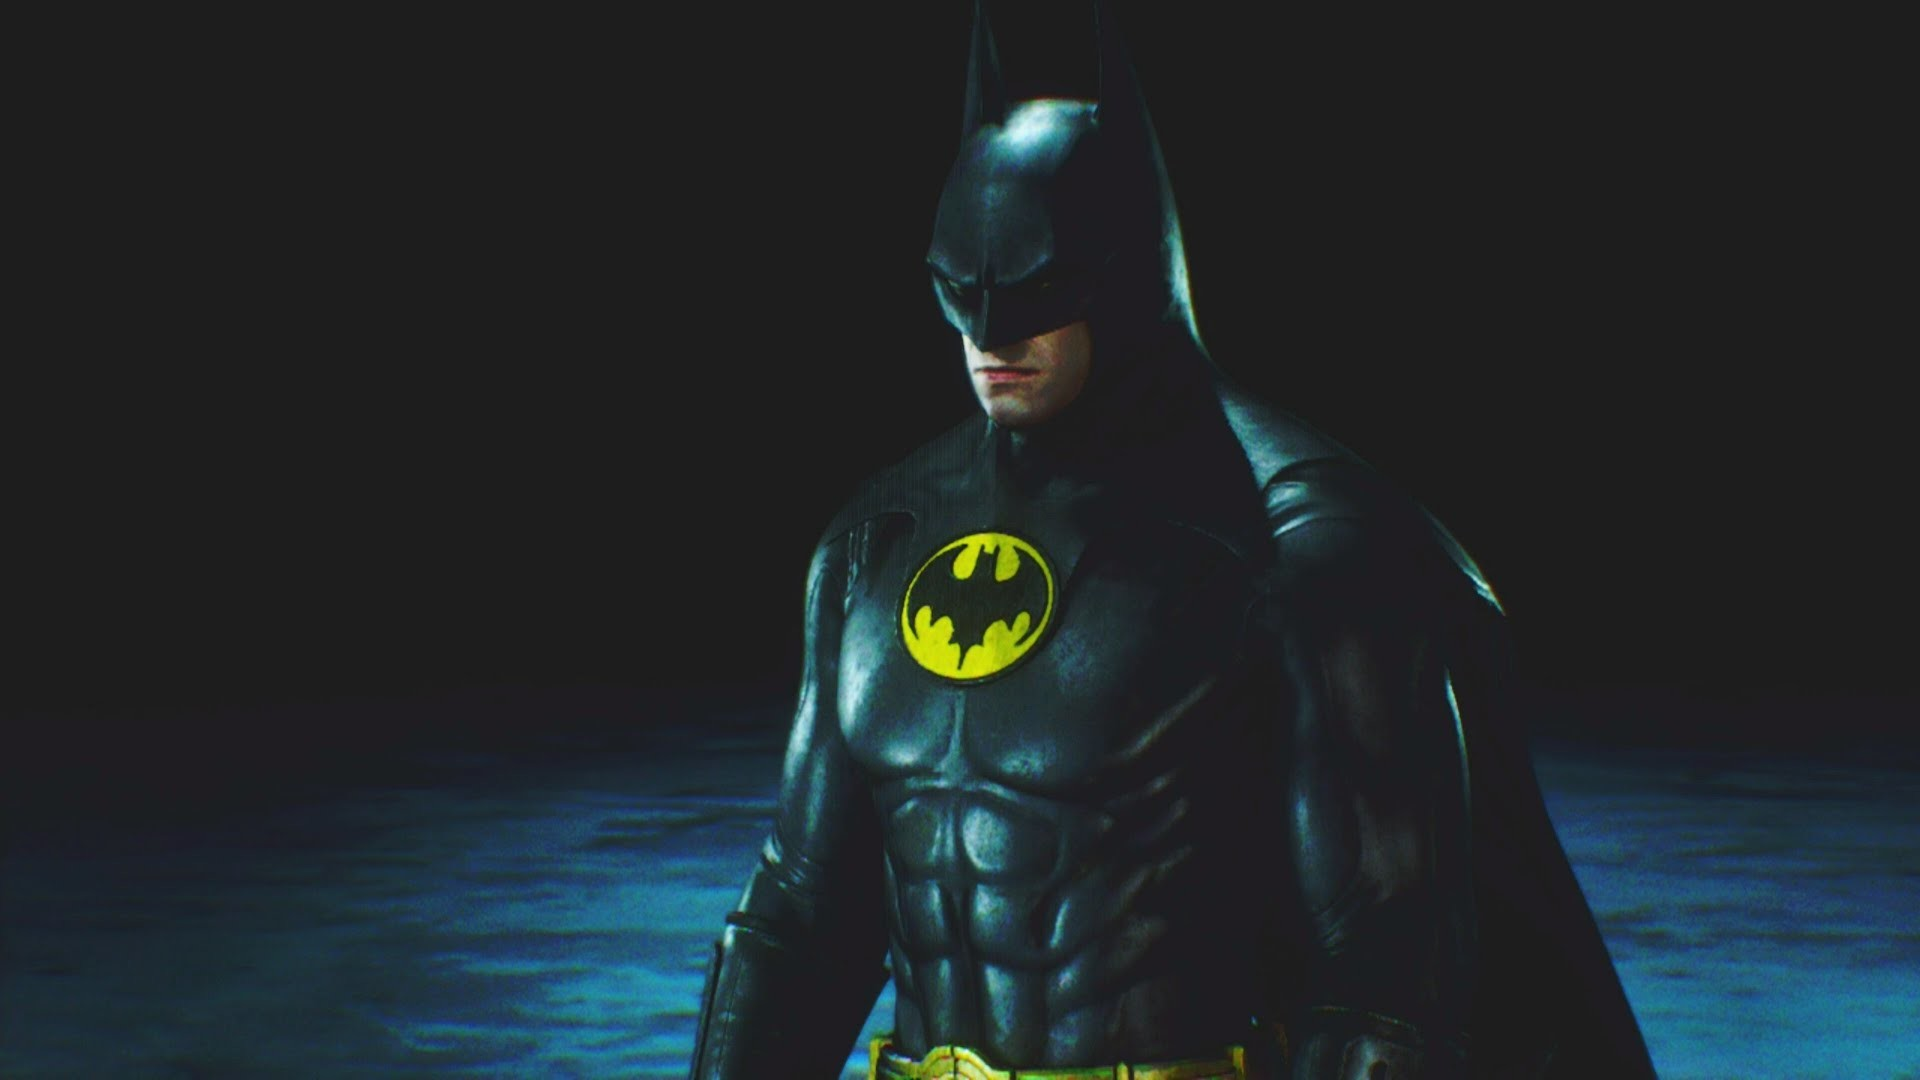 1920x1080 Batman Arkham Knight - 1989 Michael Keaton Batman Skin + Batmobile Free  Roam Gameplay - YouTube